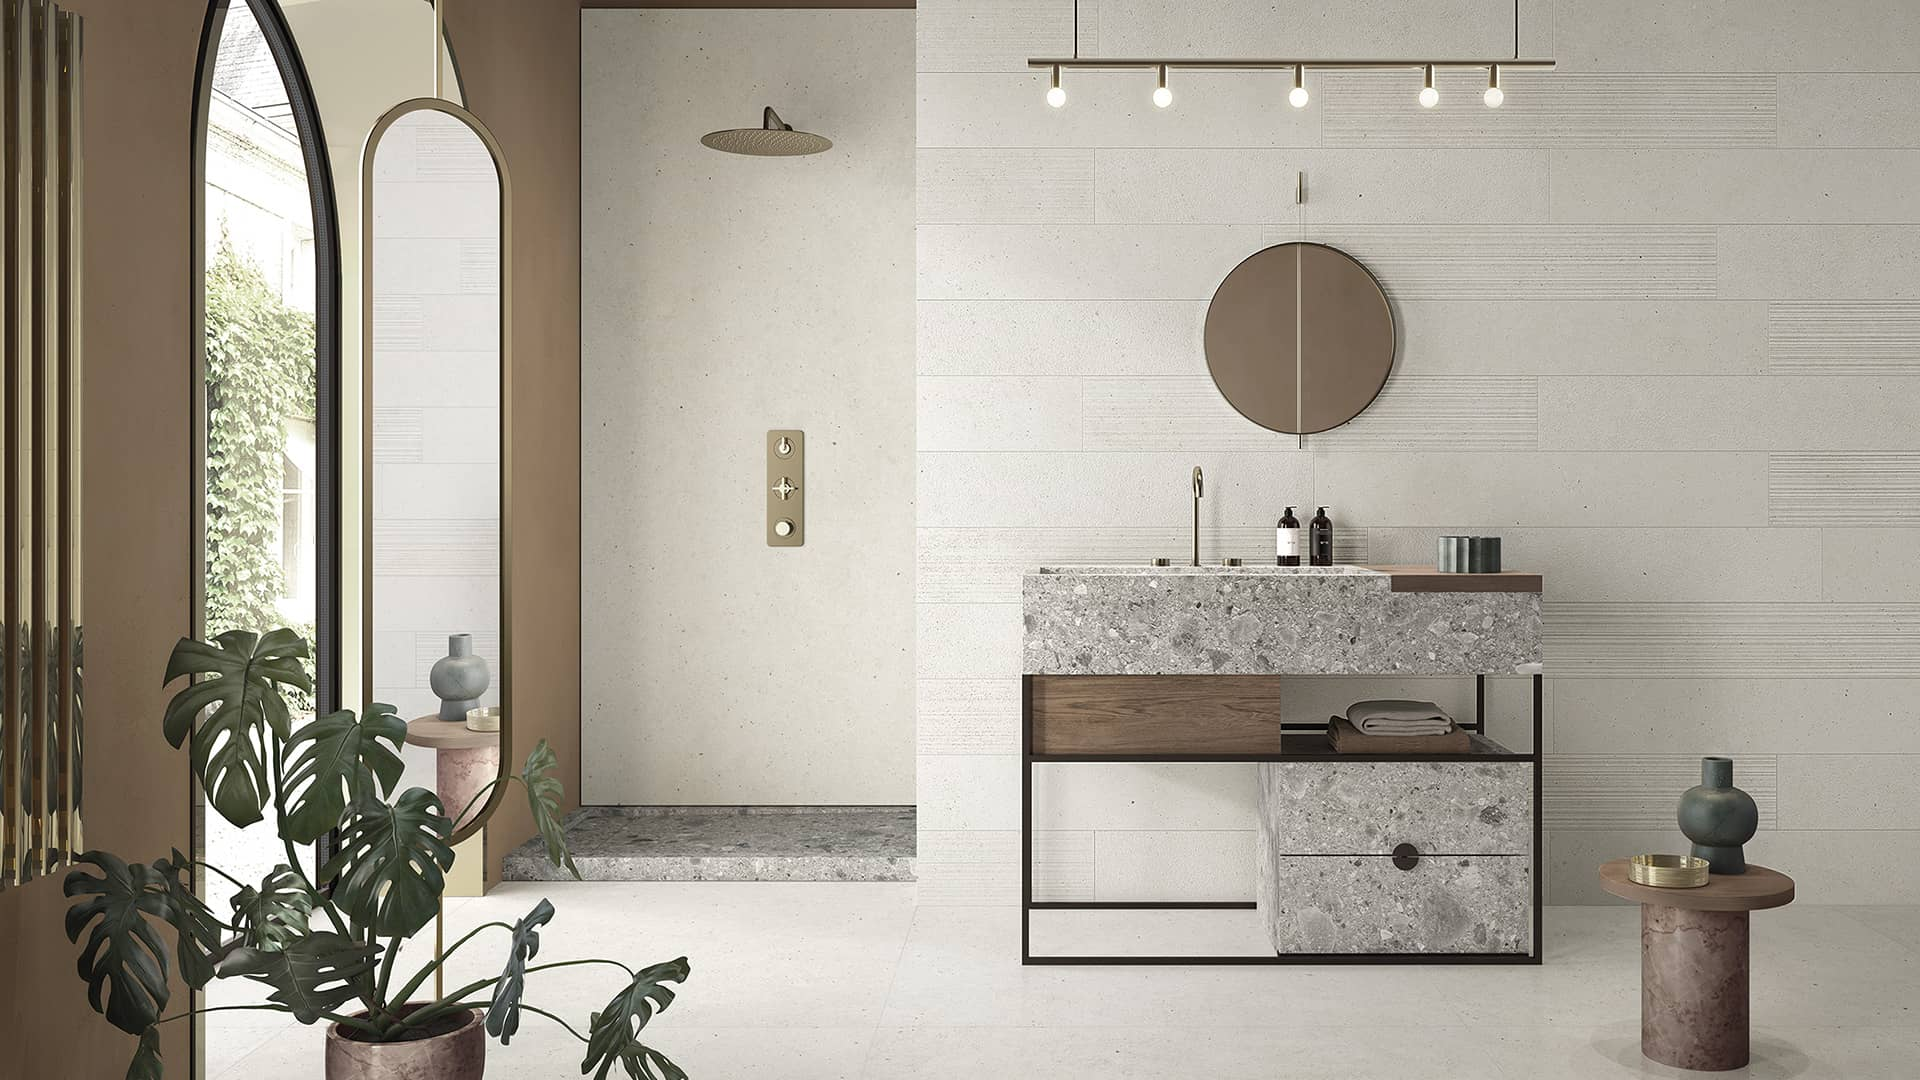 Italgraniti Group showcase their latest surface innovations at Cersaie